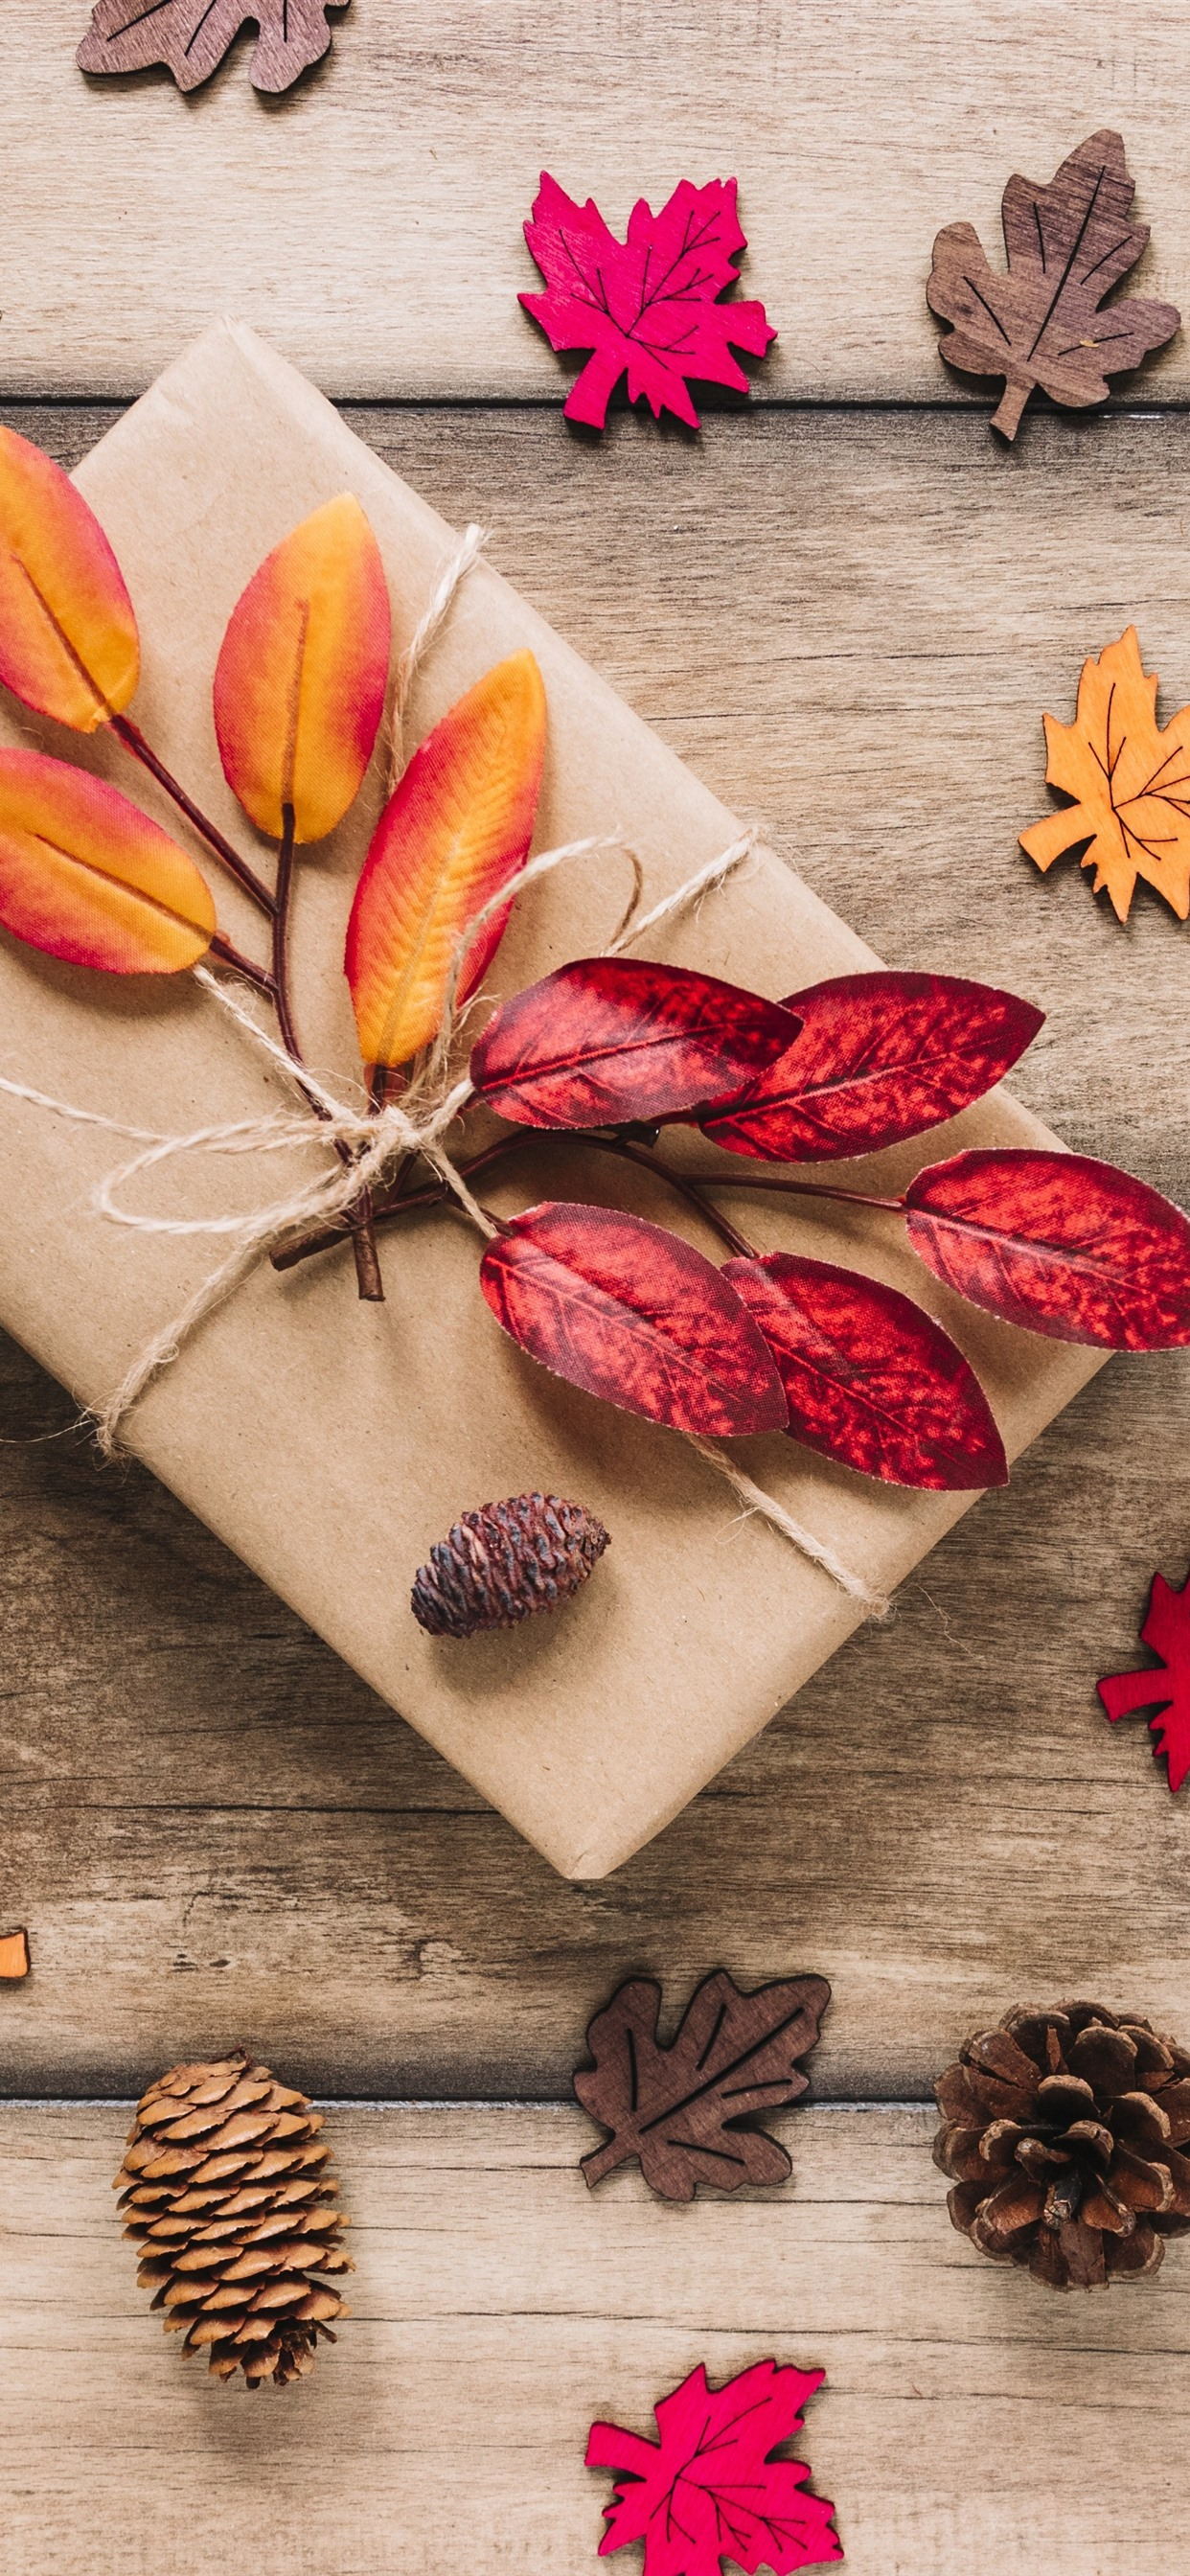 Gift Leaves Wood Board 1242x2688 Iphone Xs Max Wallpaper